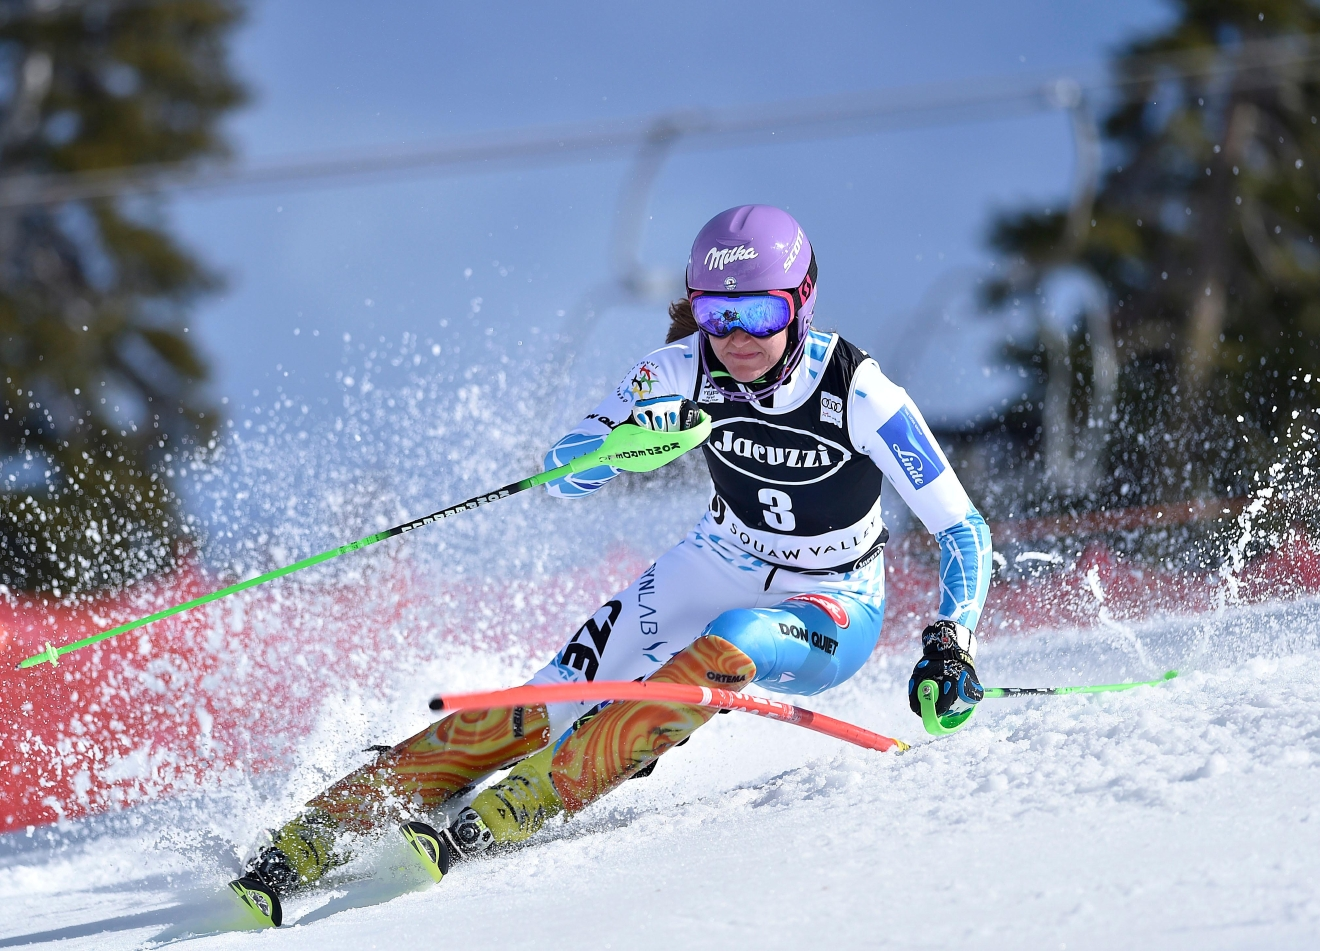 Sarka Strachova, of the Czech Republic, completes during the second run in the women's World Cup slalom competition Saturday, March 11, 2017, in Olympic Valley, Calif. (AP Photo/Scott Sady)